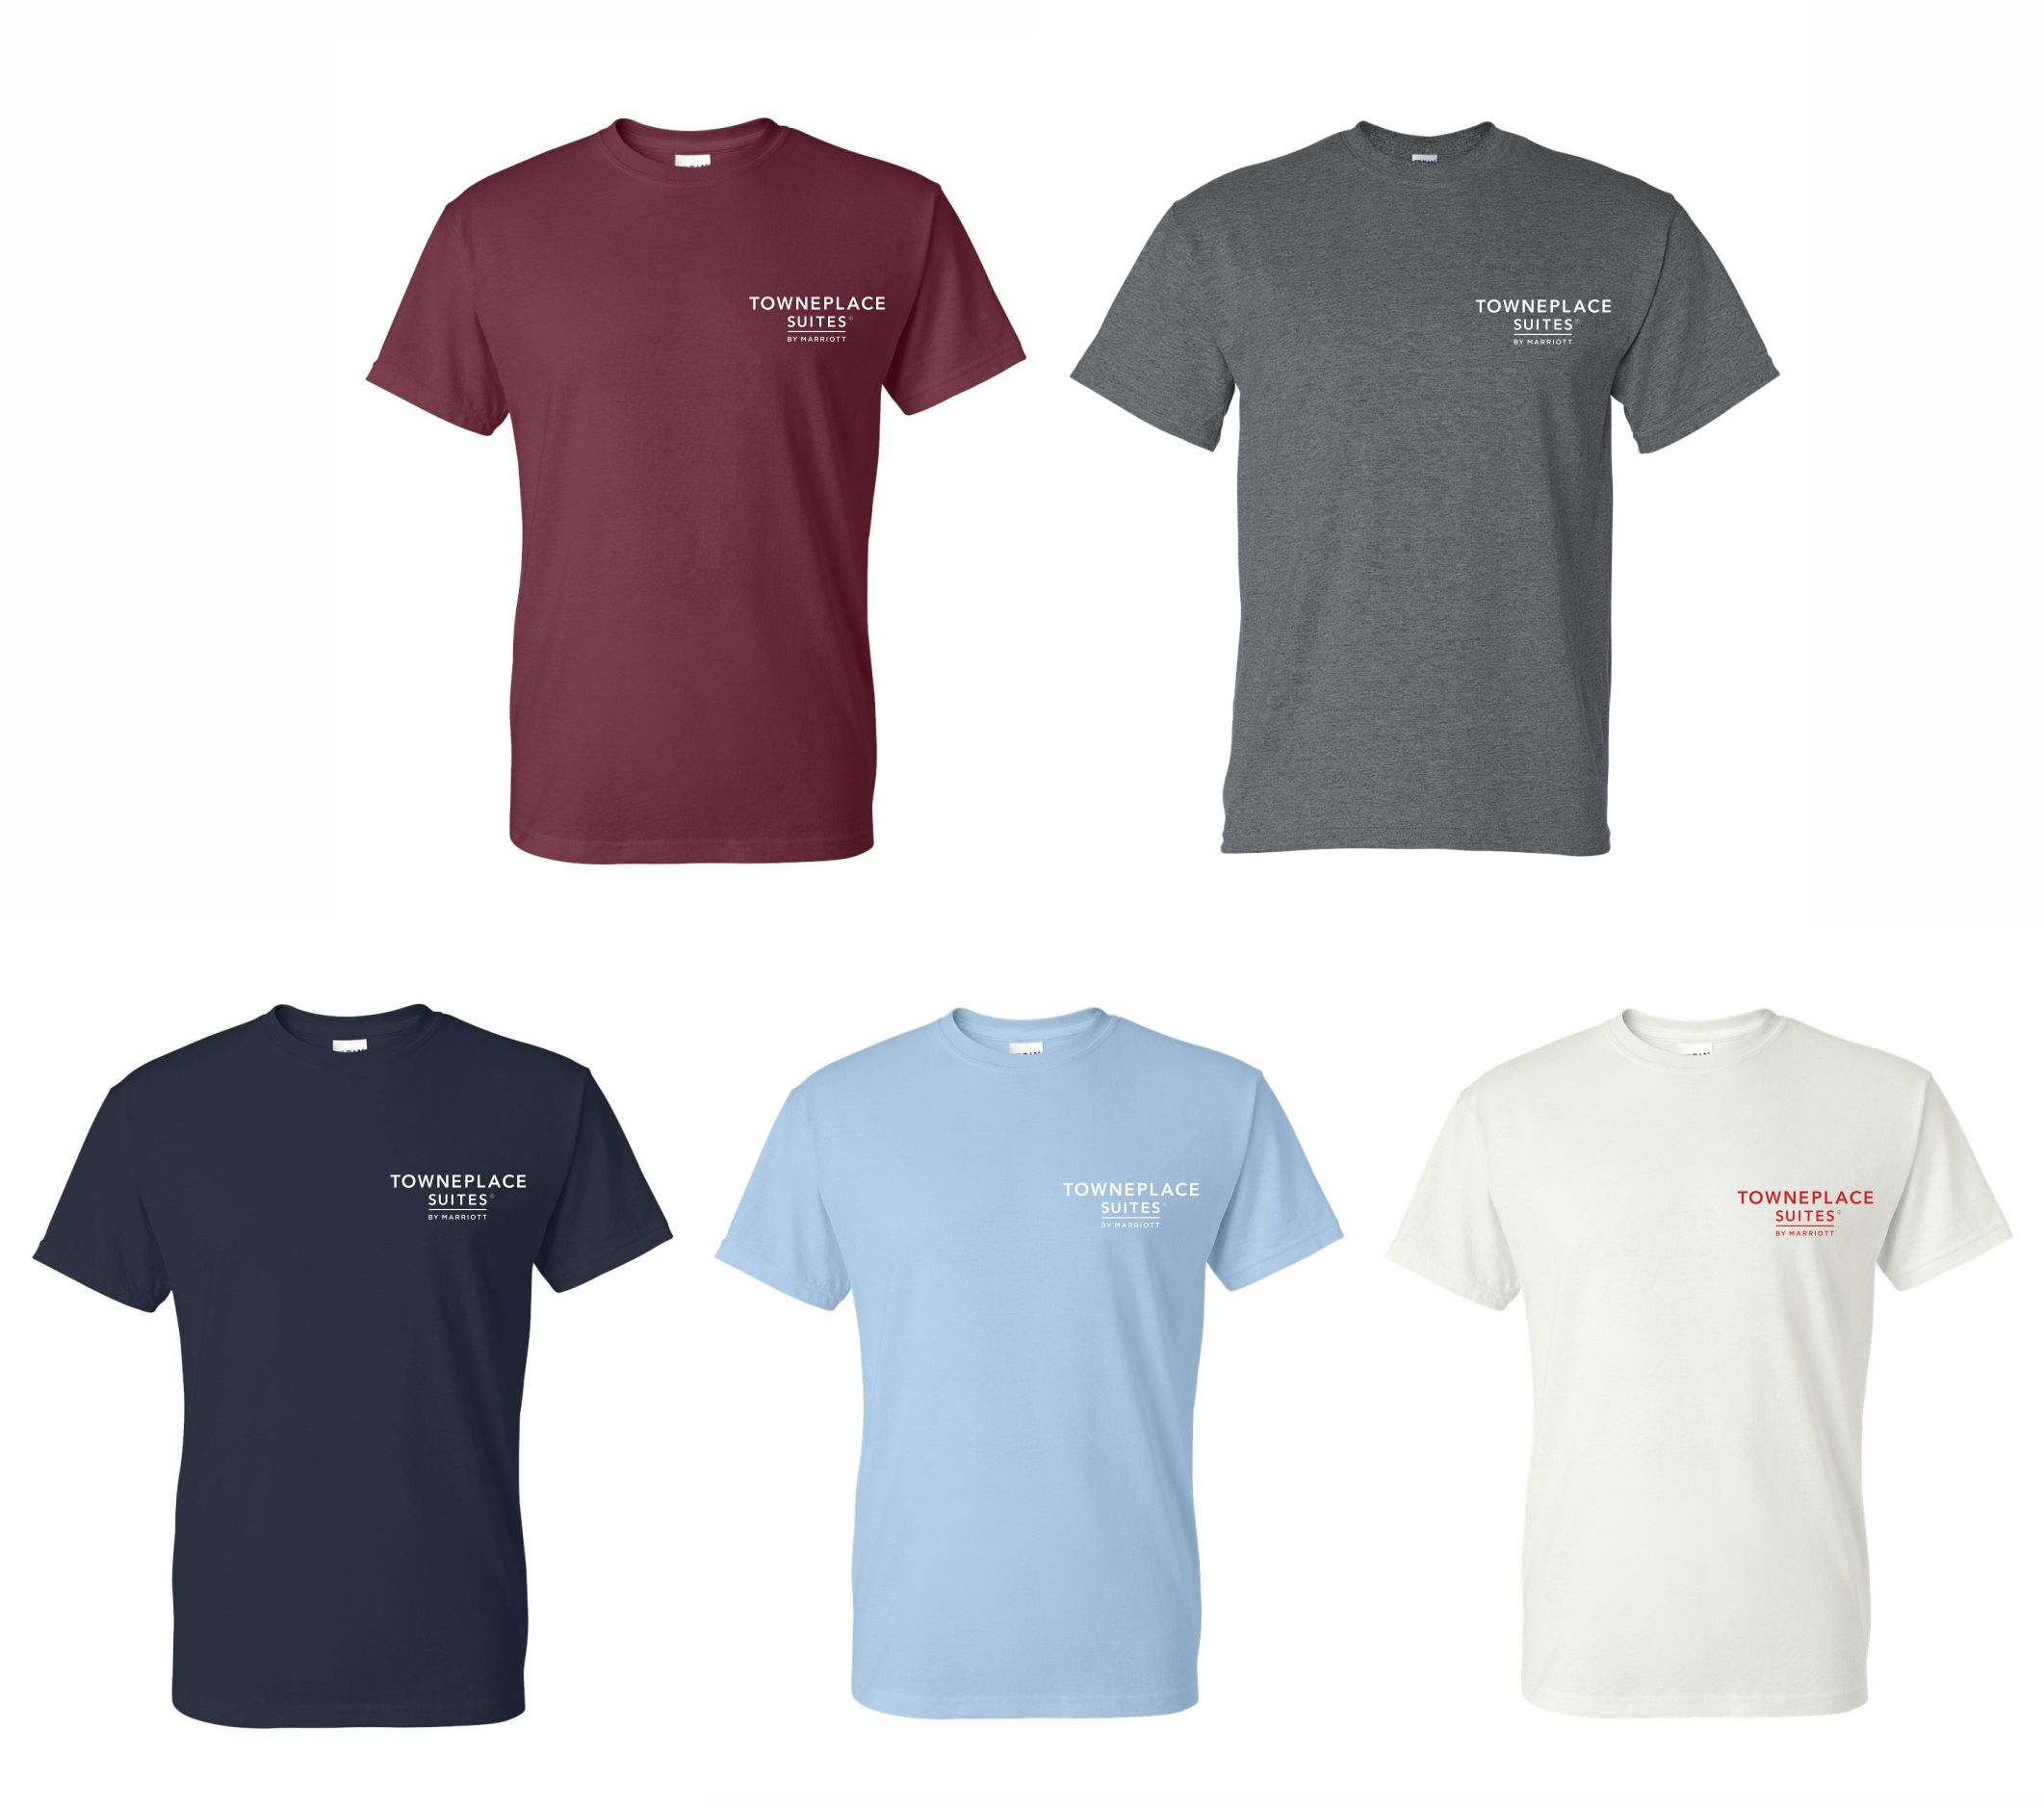 T-Shirts. Heavyweight, 50/50. Maroon, Dark Heather, Navy Blue, Light Blue and White.